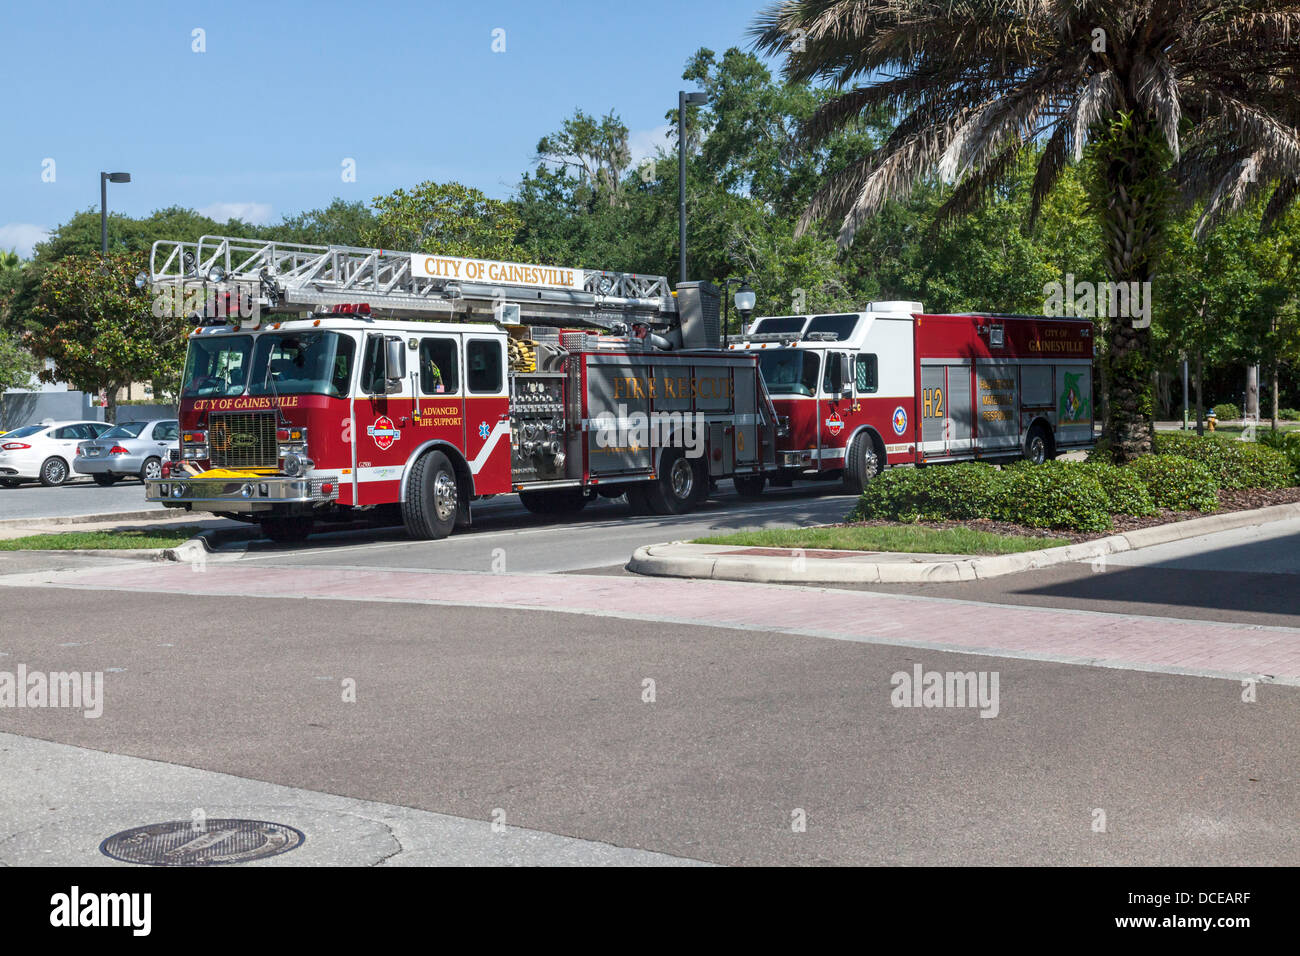 Fire ladder truck and Hazmat vehicle parked. - Stock Image